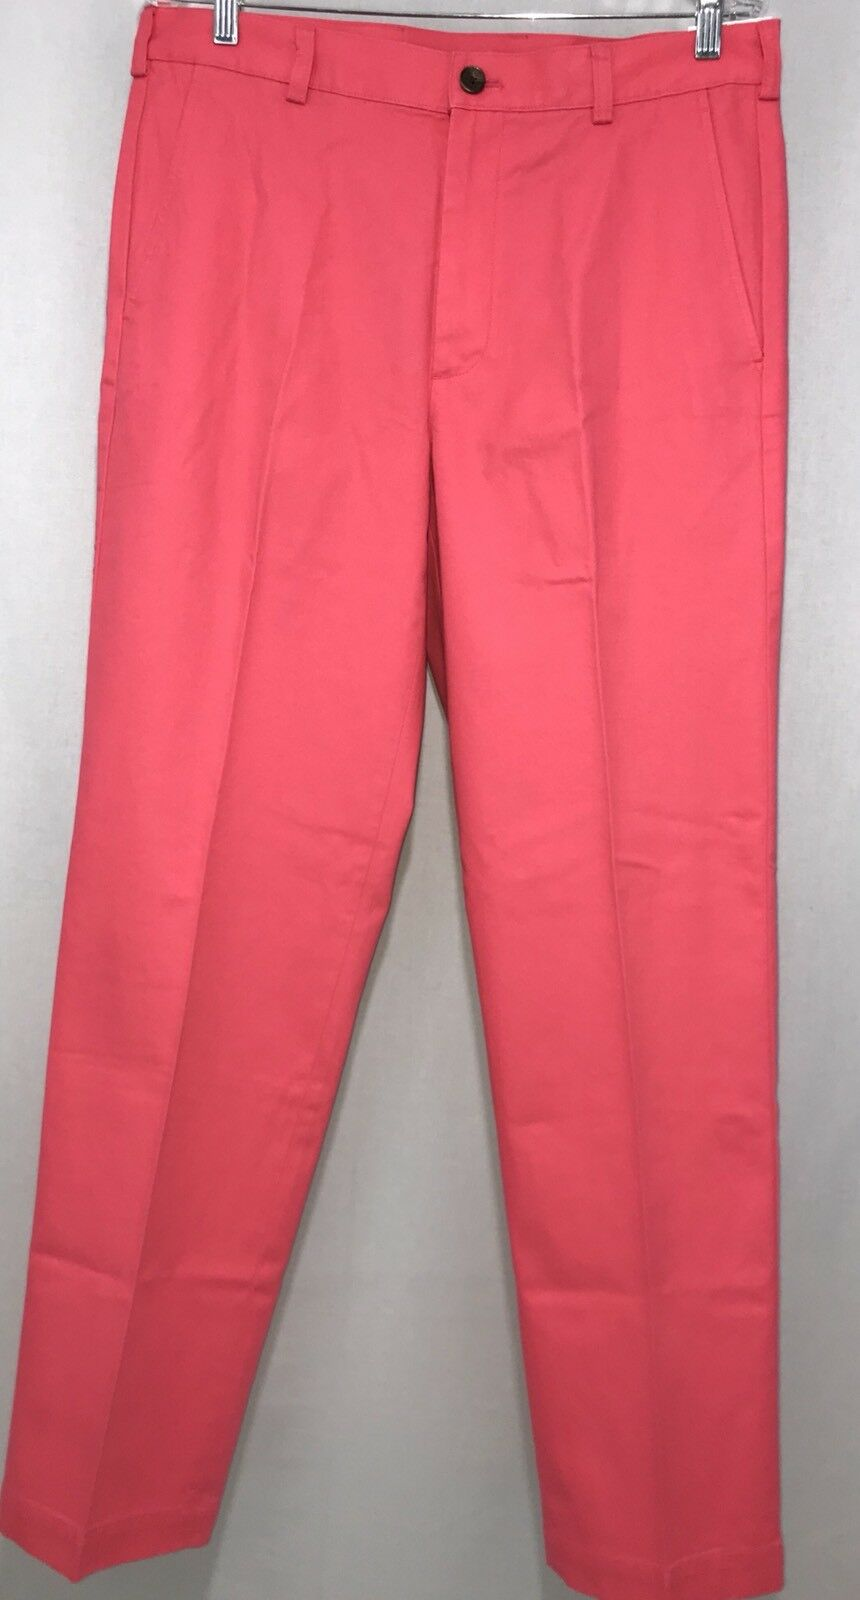 Men's Brooks Bredhers Bright Pink 34x32 346 Clark Cotton Casual Pant